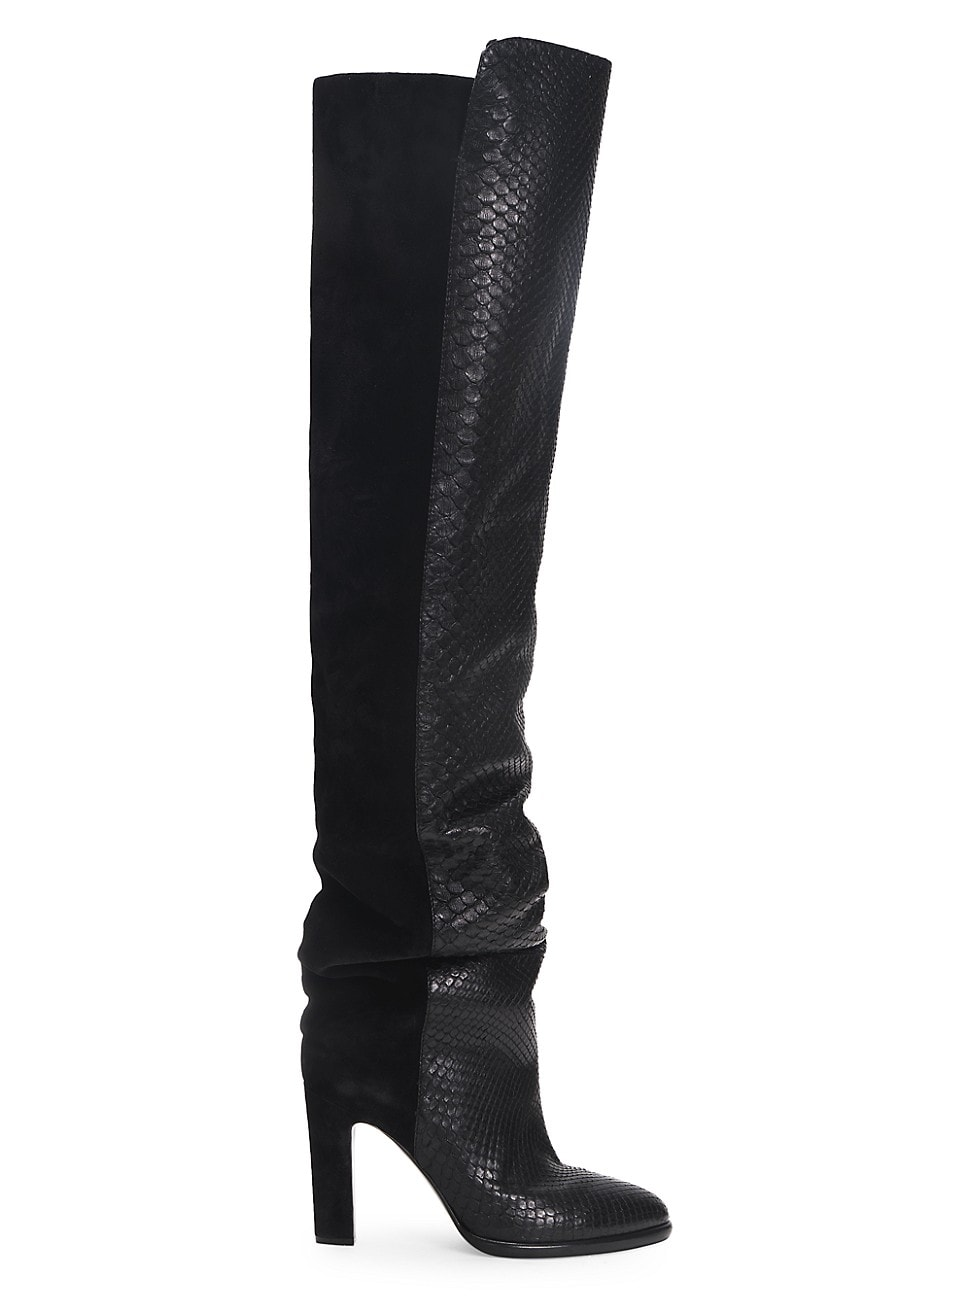 Givenchy Women's Mayfair Suede & Snakeskin-embossed Leather Boots In Black